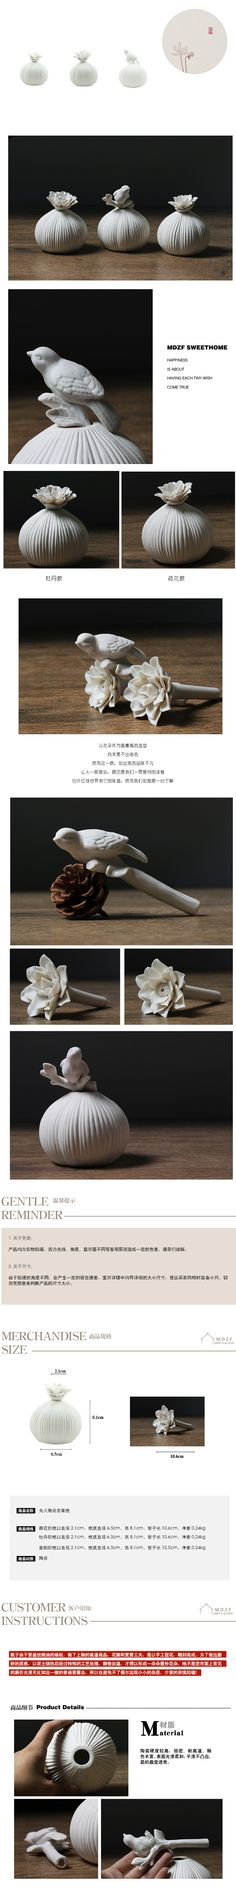 Clean ceramic flower aromatherapy bottle fashion essential oil tank peony lotus, air fresher holder, reed diffuser holder-inIncense & Incense Burners from Home & Garden on Aliexpress.com   Alibaba Group